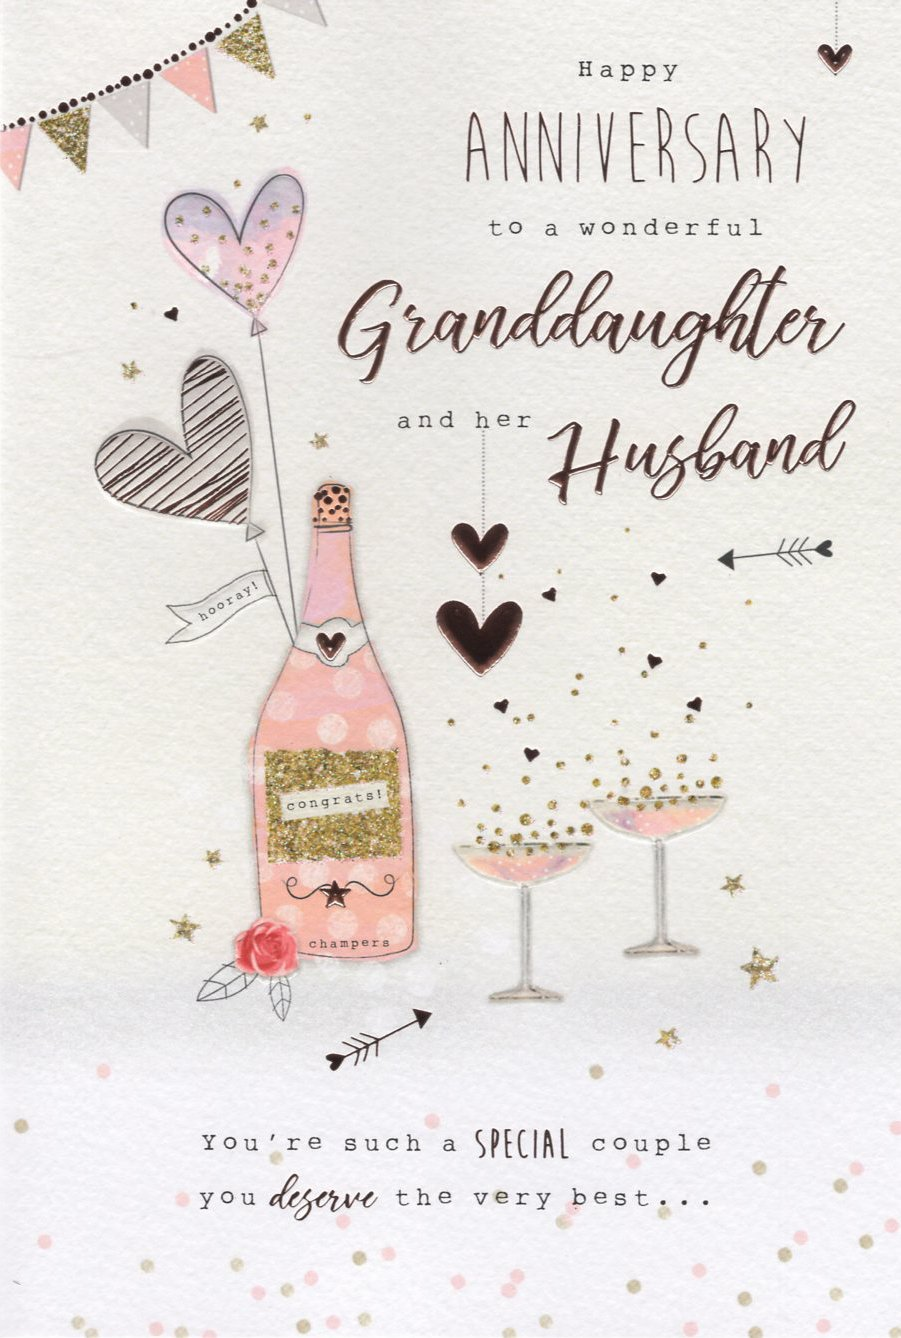 Happy Anniversary To A Wonderful Granddaughter And Her Husband